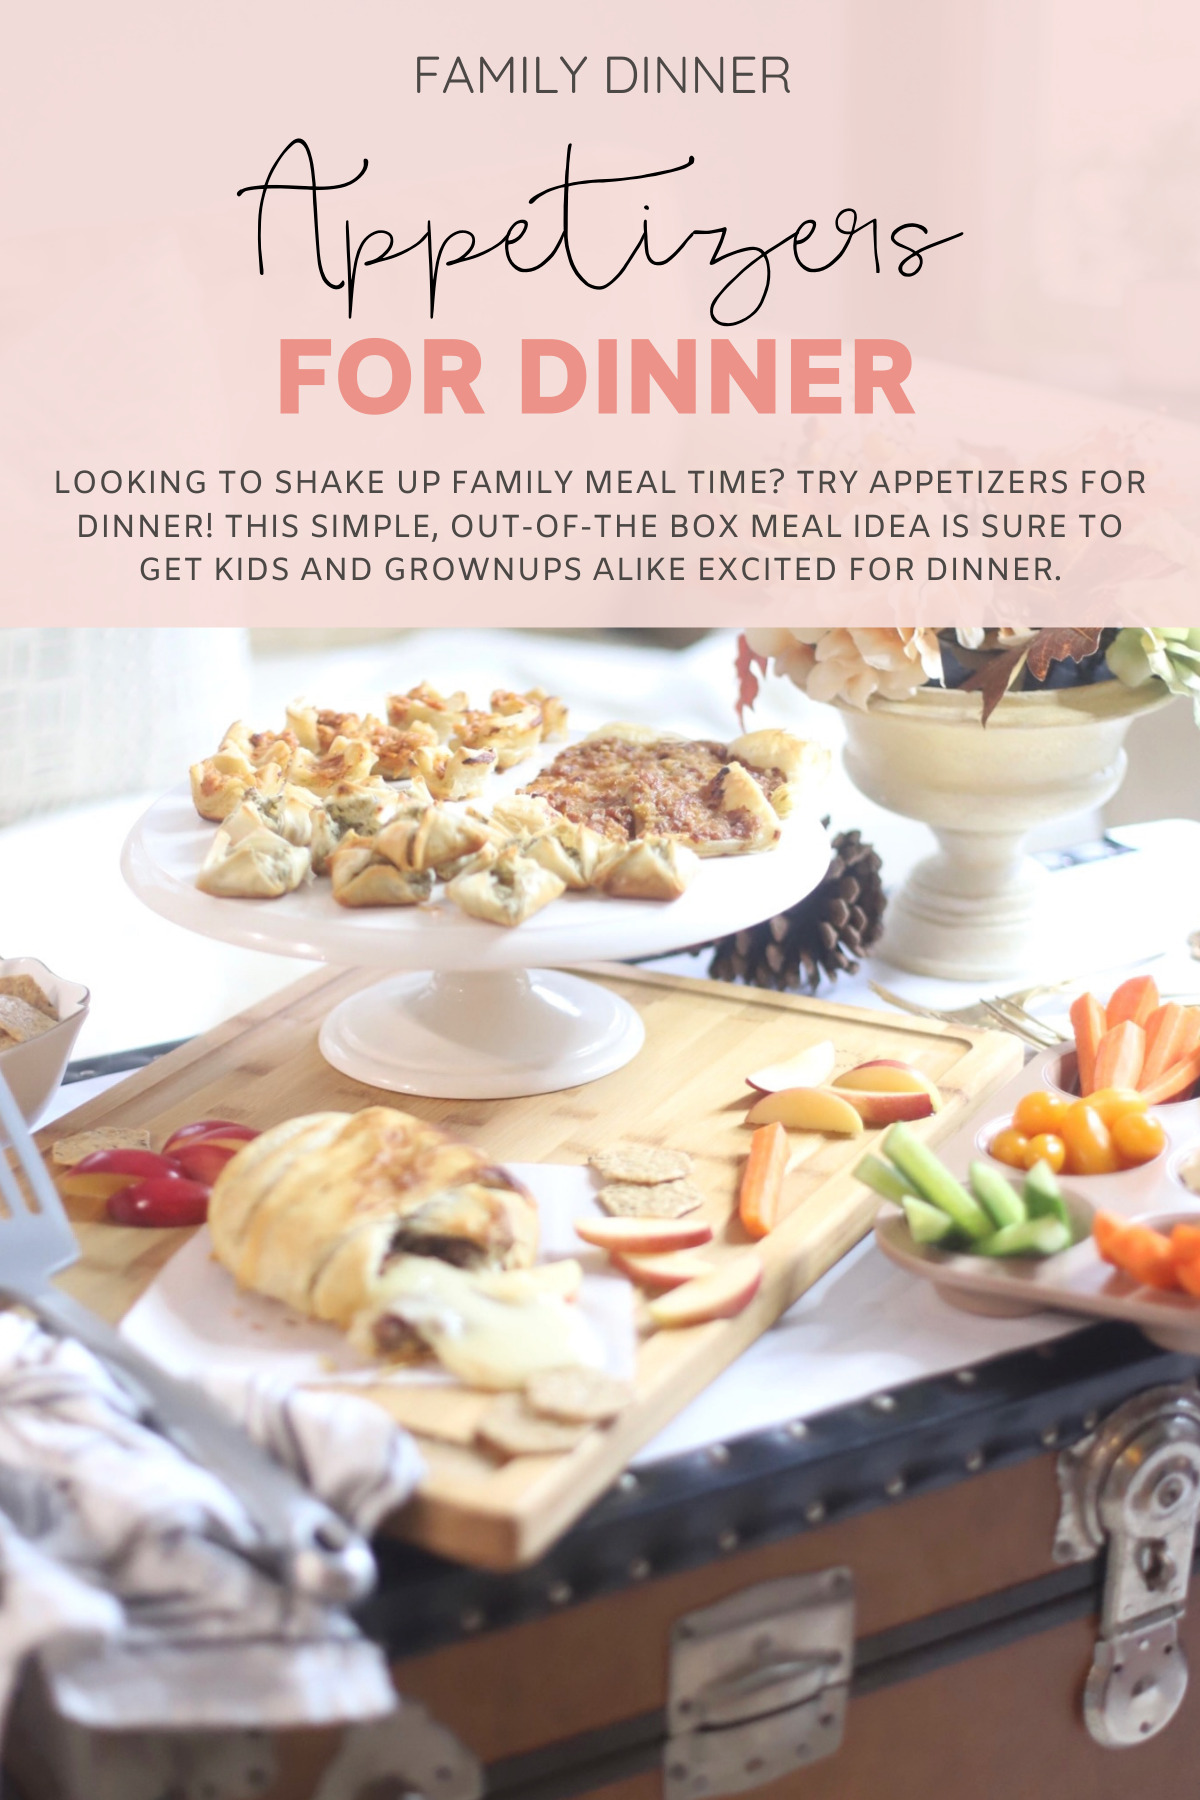 Looking to shake up family meal time? Try appetizers for dinner! This simple, out-of-the box meal idea is sure to get kids and grownups alike excited for dinner.| @glitterinclexi | GLITTERINC.COM